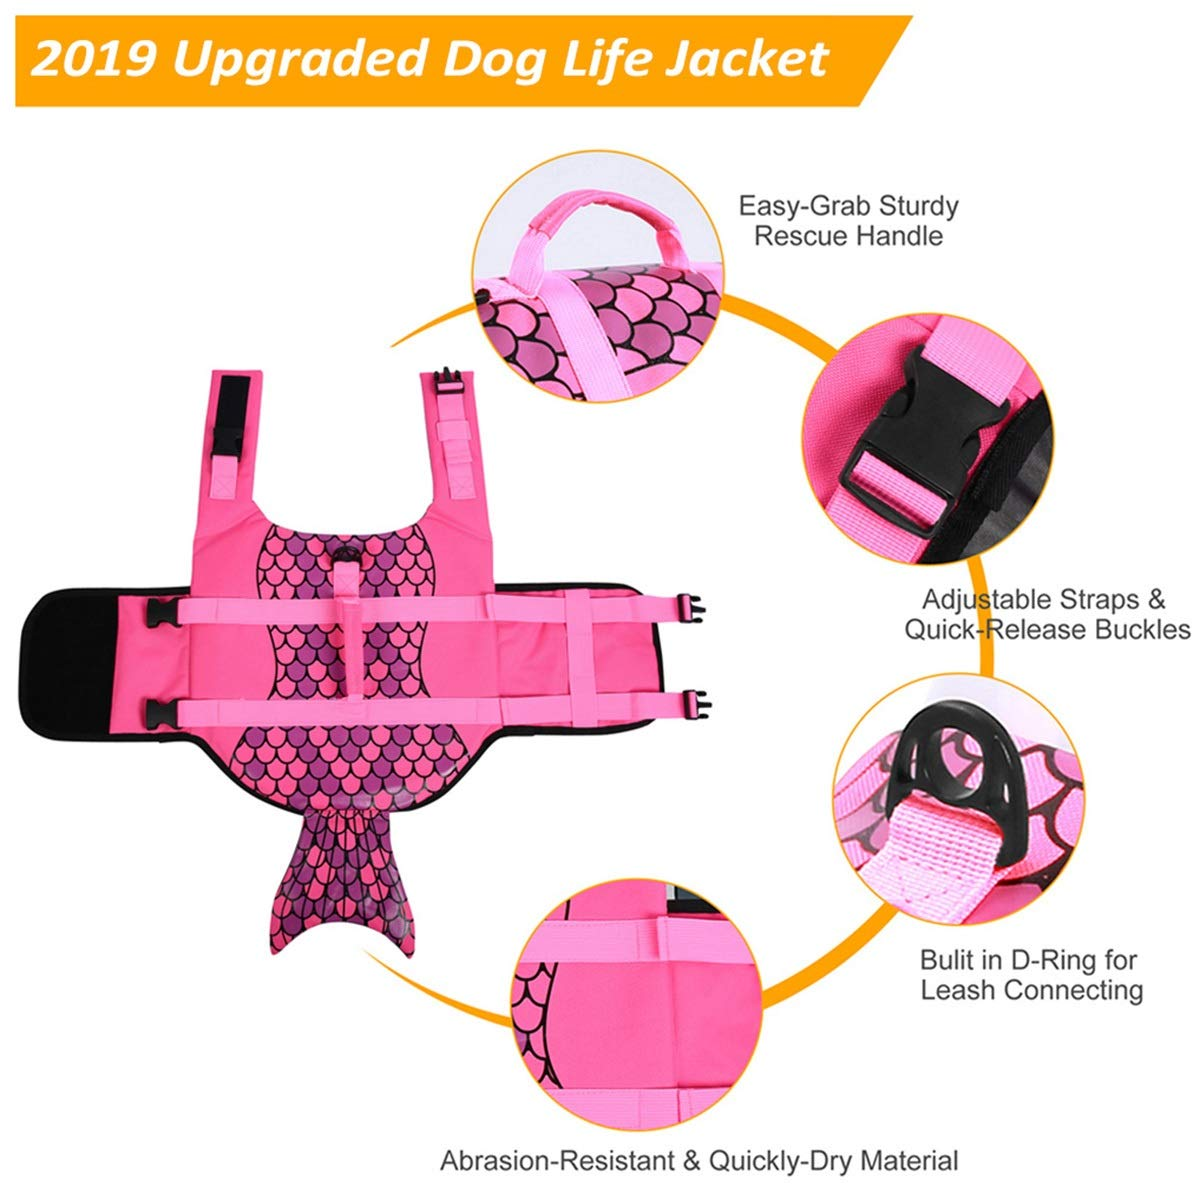 5 Sizes AOFITEE Dog Life Jacket Pet Safety Vest Adjustable Dog Lifesaver Ripstop Pet Life Preserver with Rescue Handle for Small Medium and Large Dogs